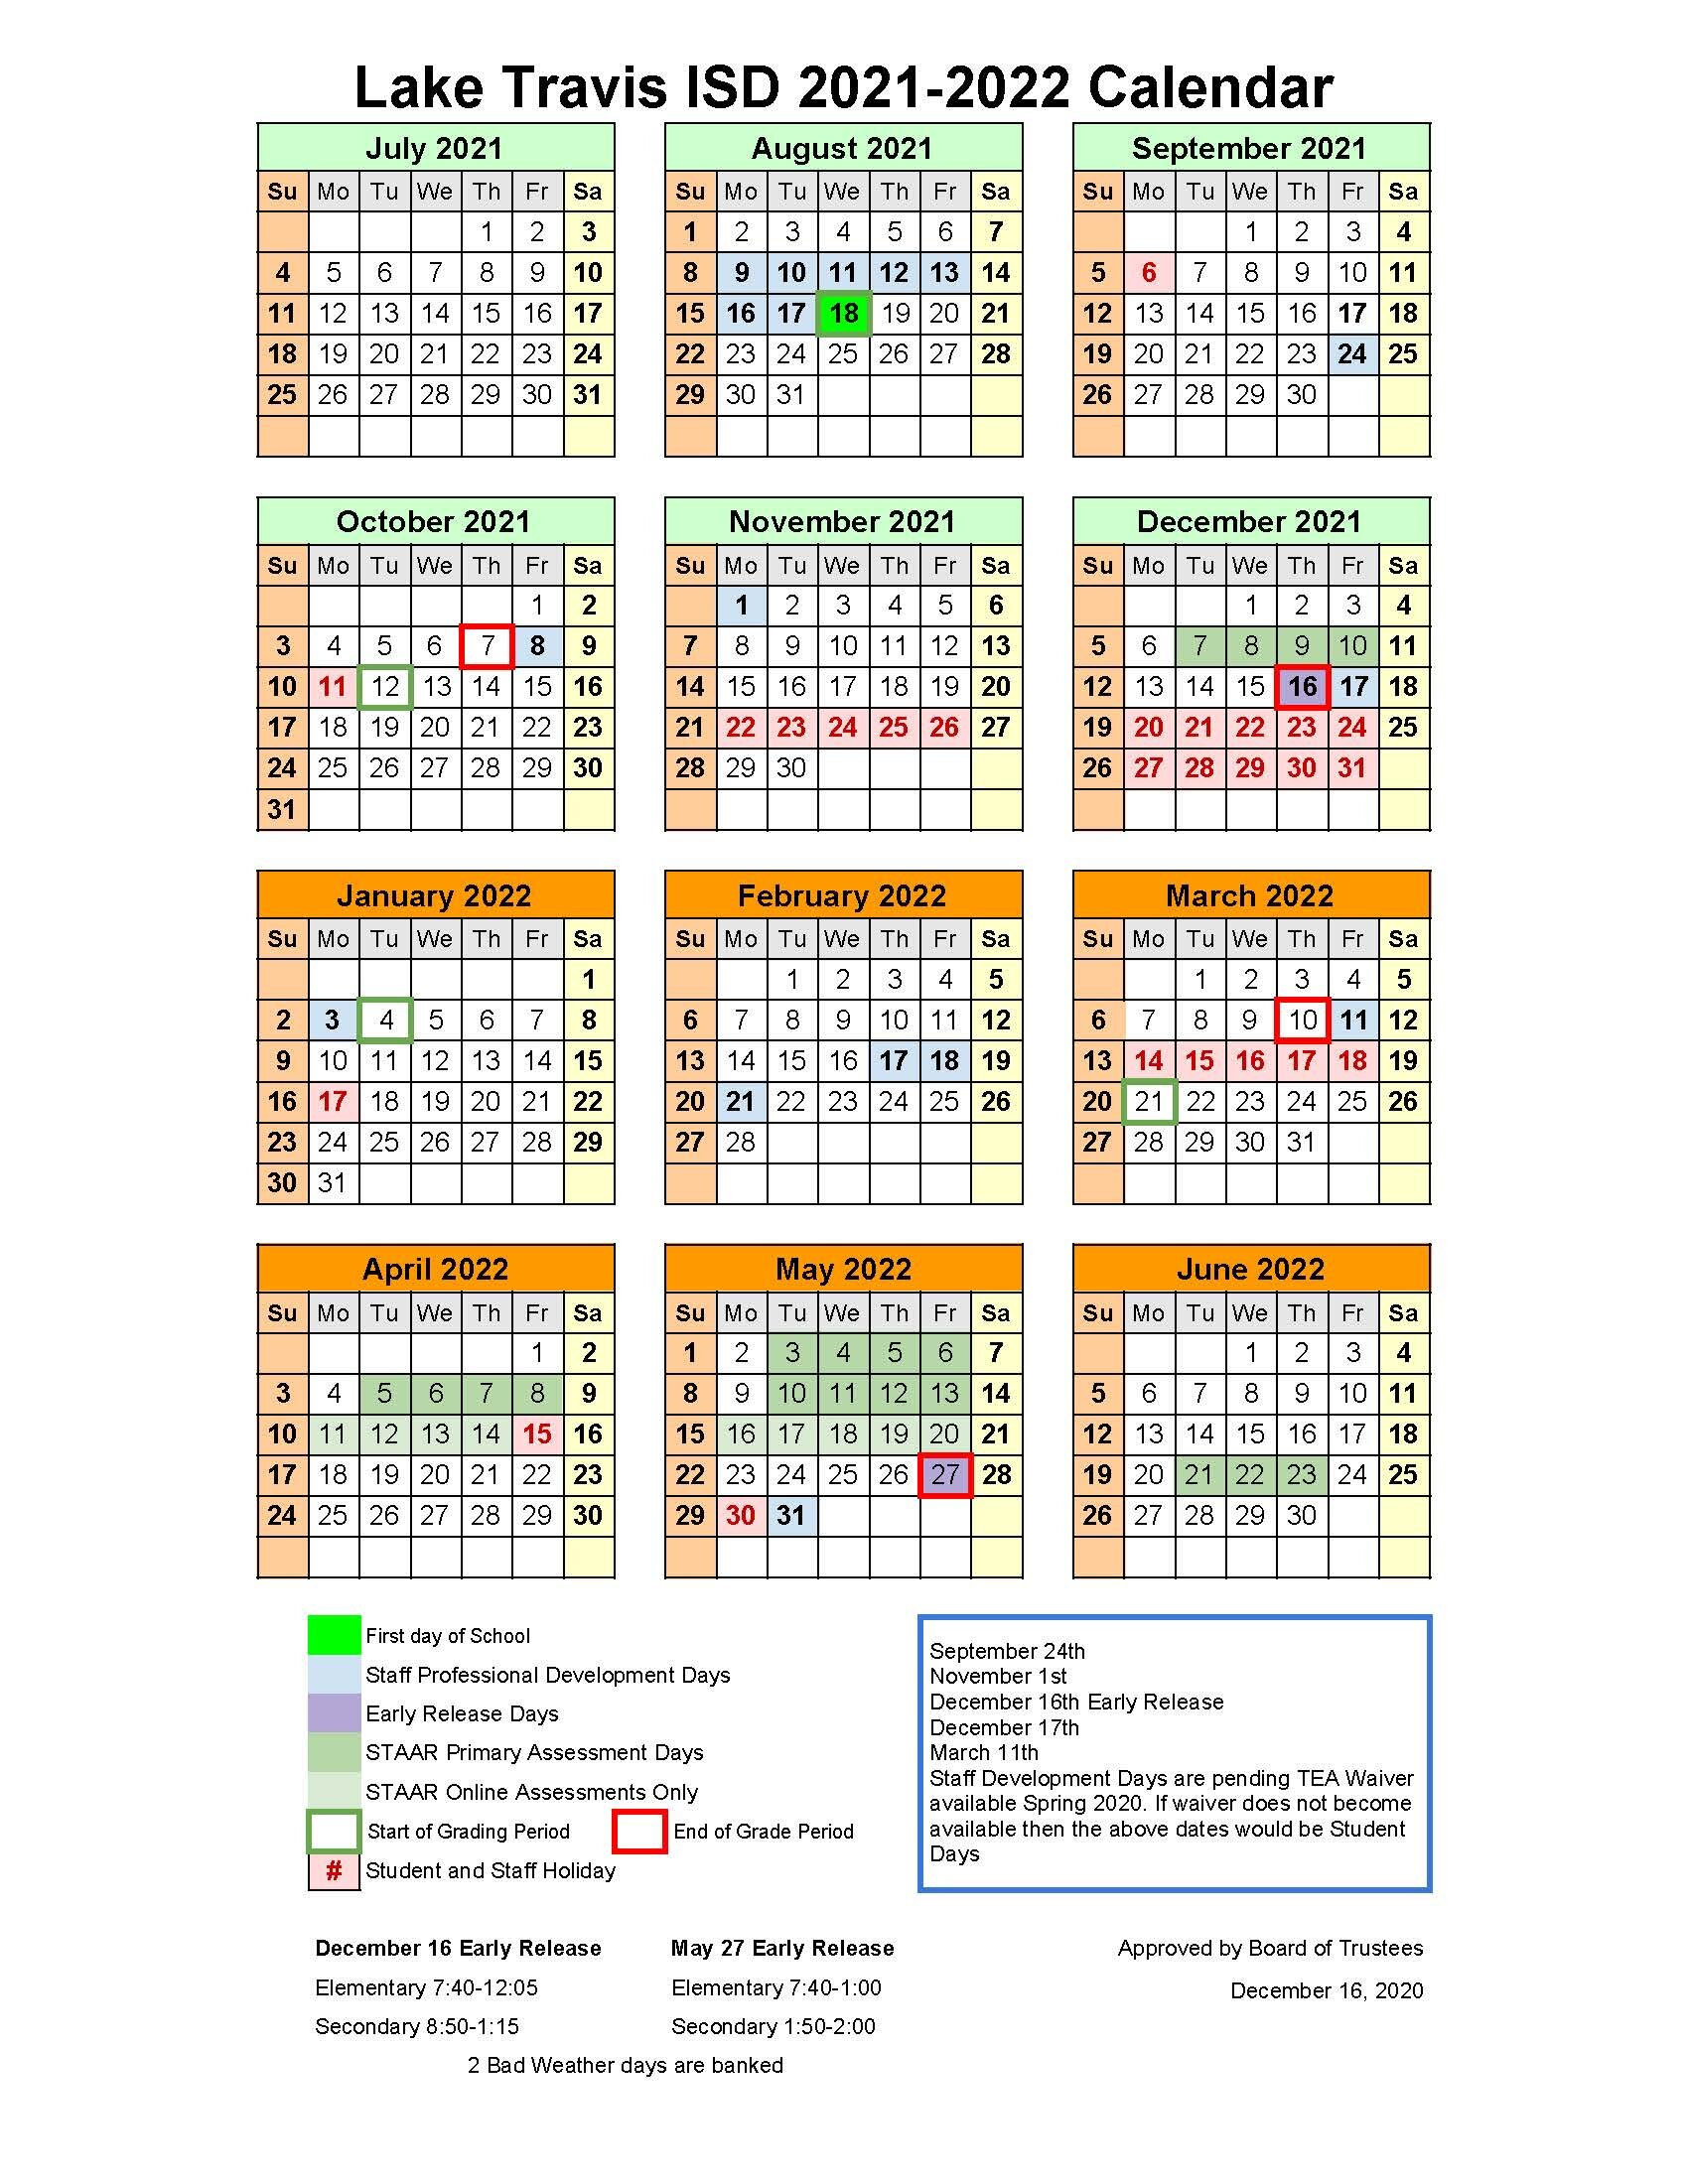 Primary Calendar 2022.Board Adopts Ltisd 2021 2022 Instructional Calendar Pending Waiver Currents